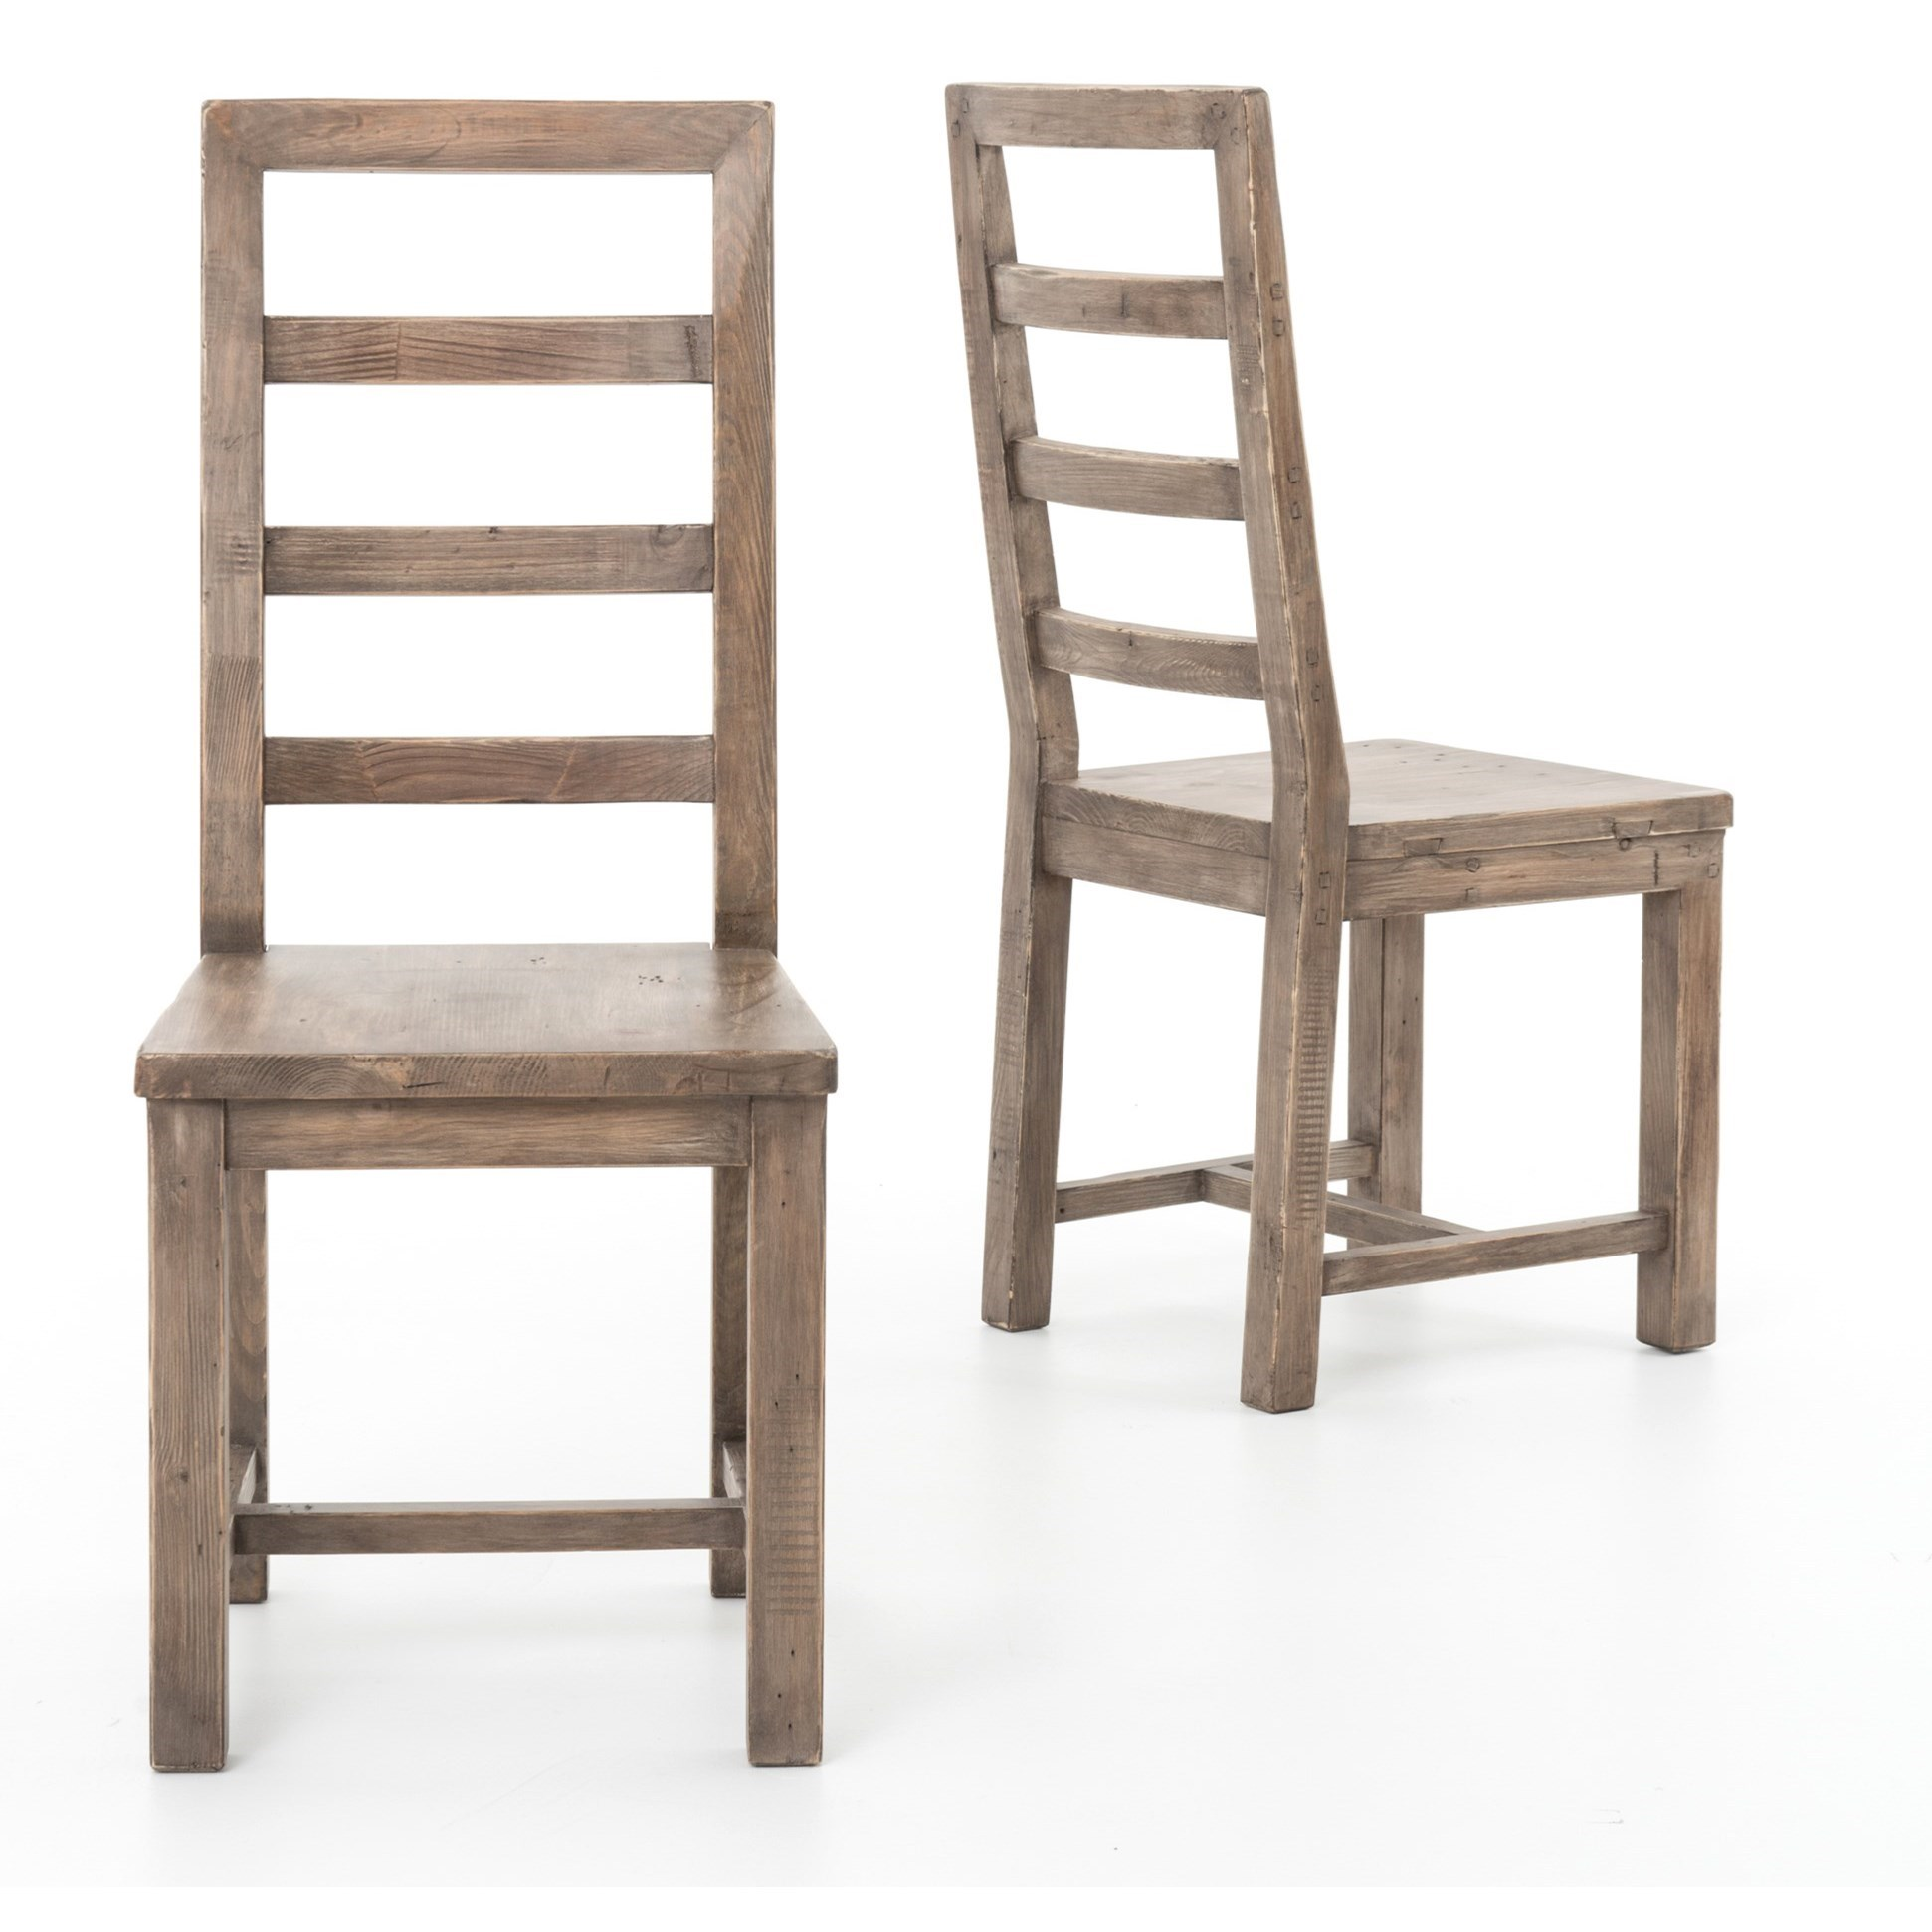 Four Hands Post and Rail Dining Chair - Item Number: VPRD-02T-11